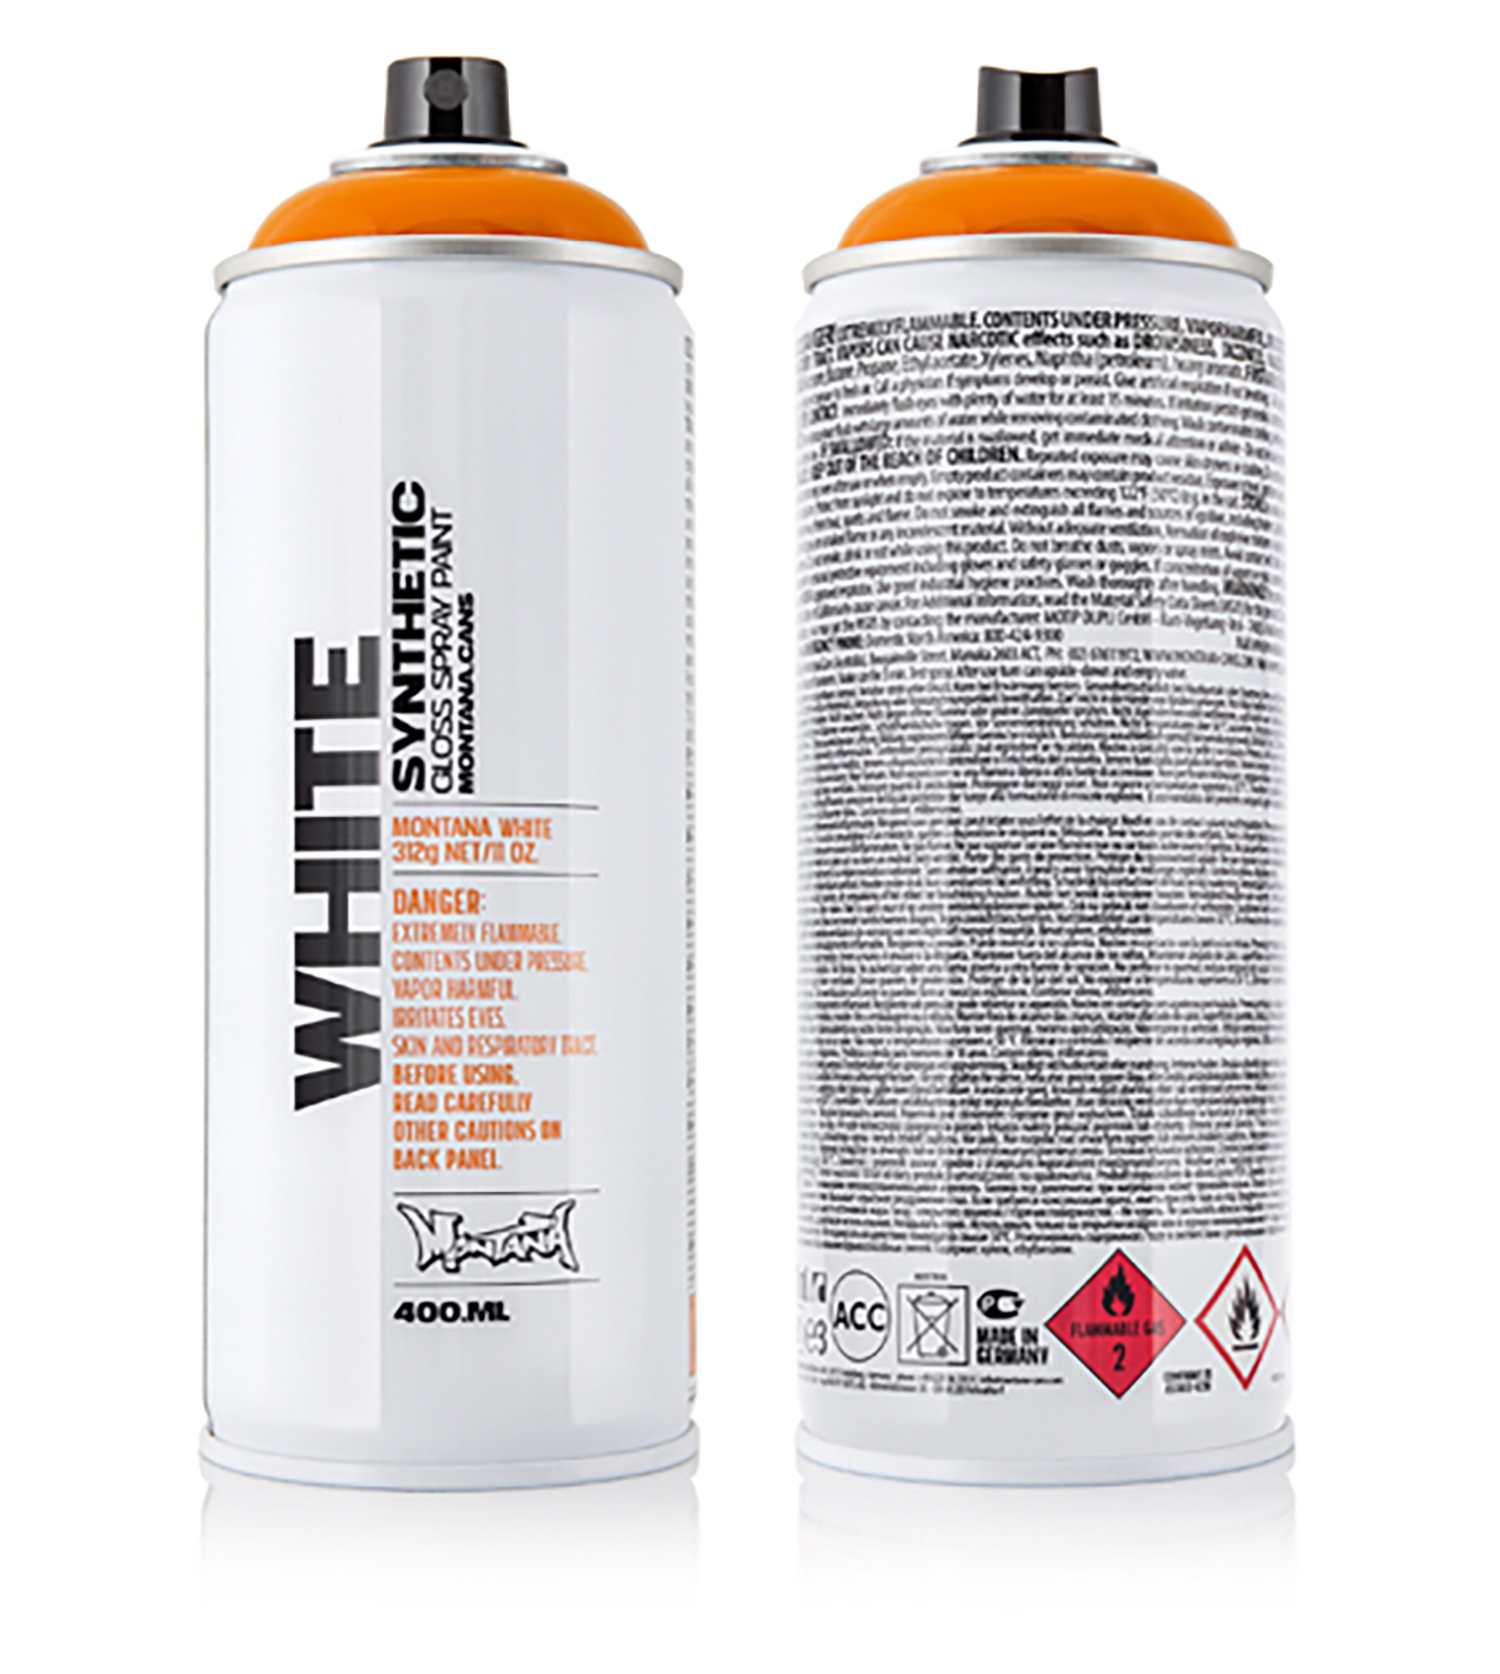 MONTANA-WHITE-SPRAY-400ML-2070